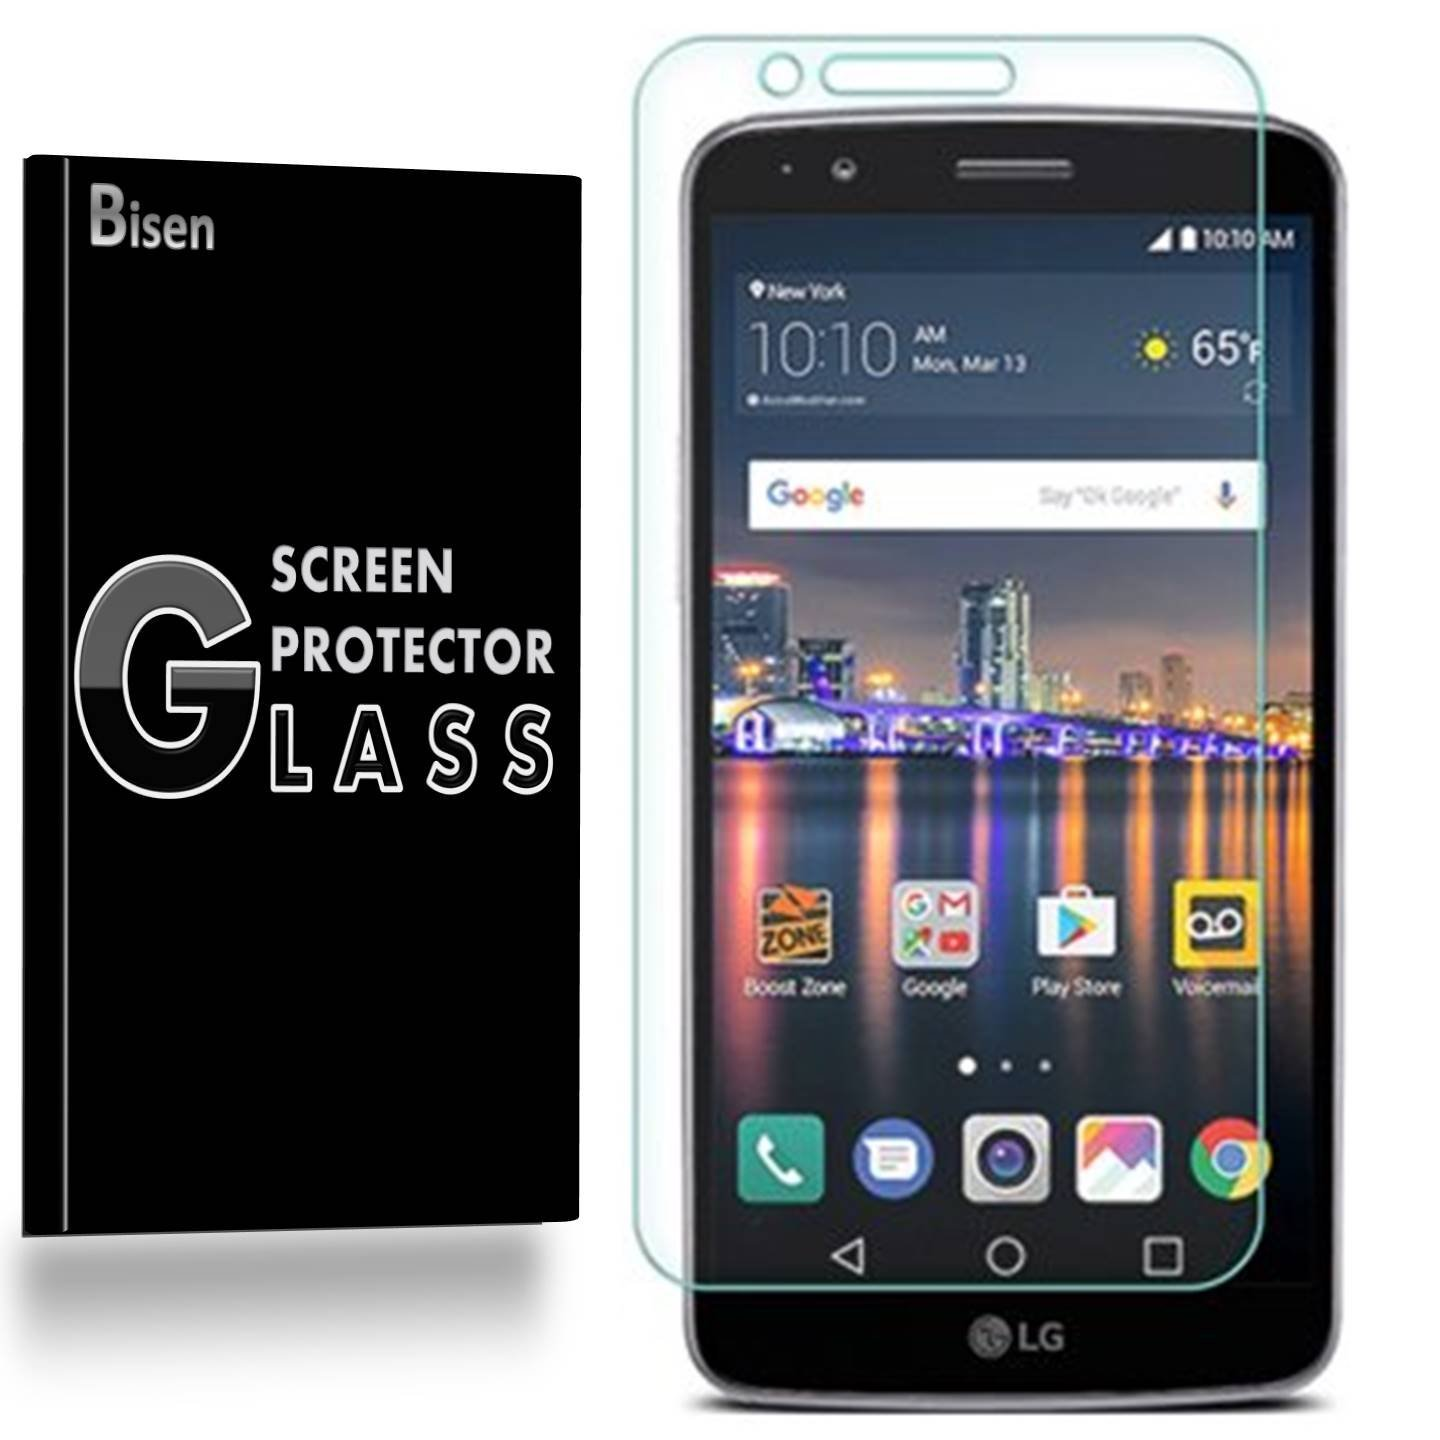 LG Stylo 3 (2017 Release) [3-Pack, BISEN] 9H Tempered Glass Screen Protector, Anti-Scratch, Anti-Shock, Shatterproof, Bubble Free